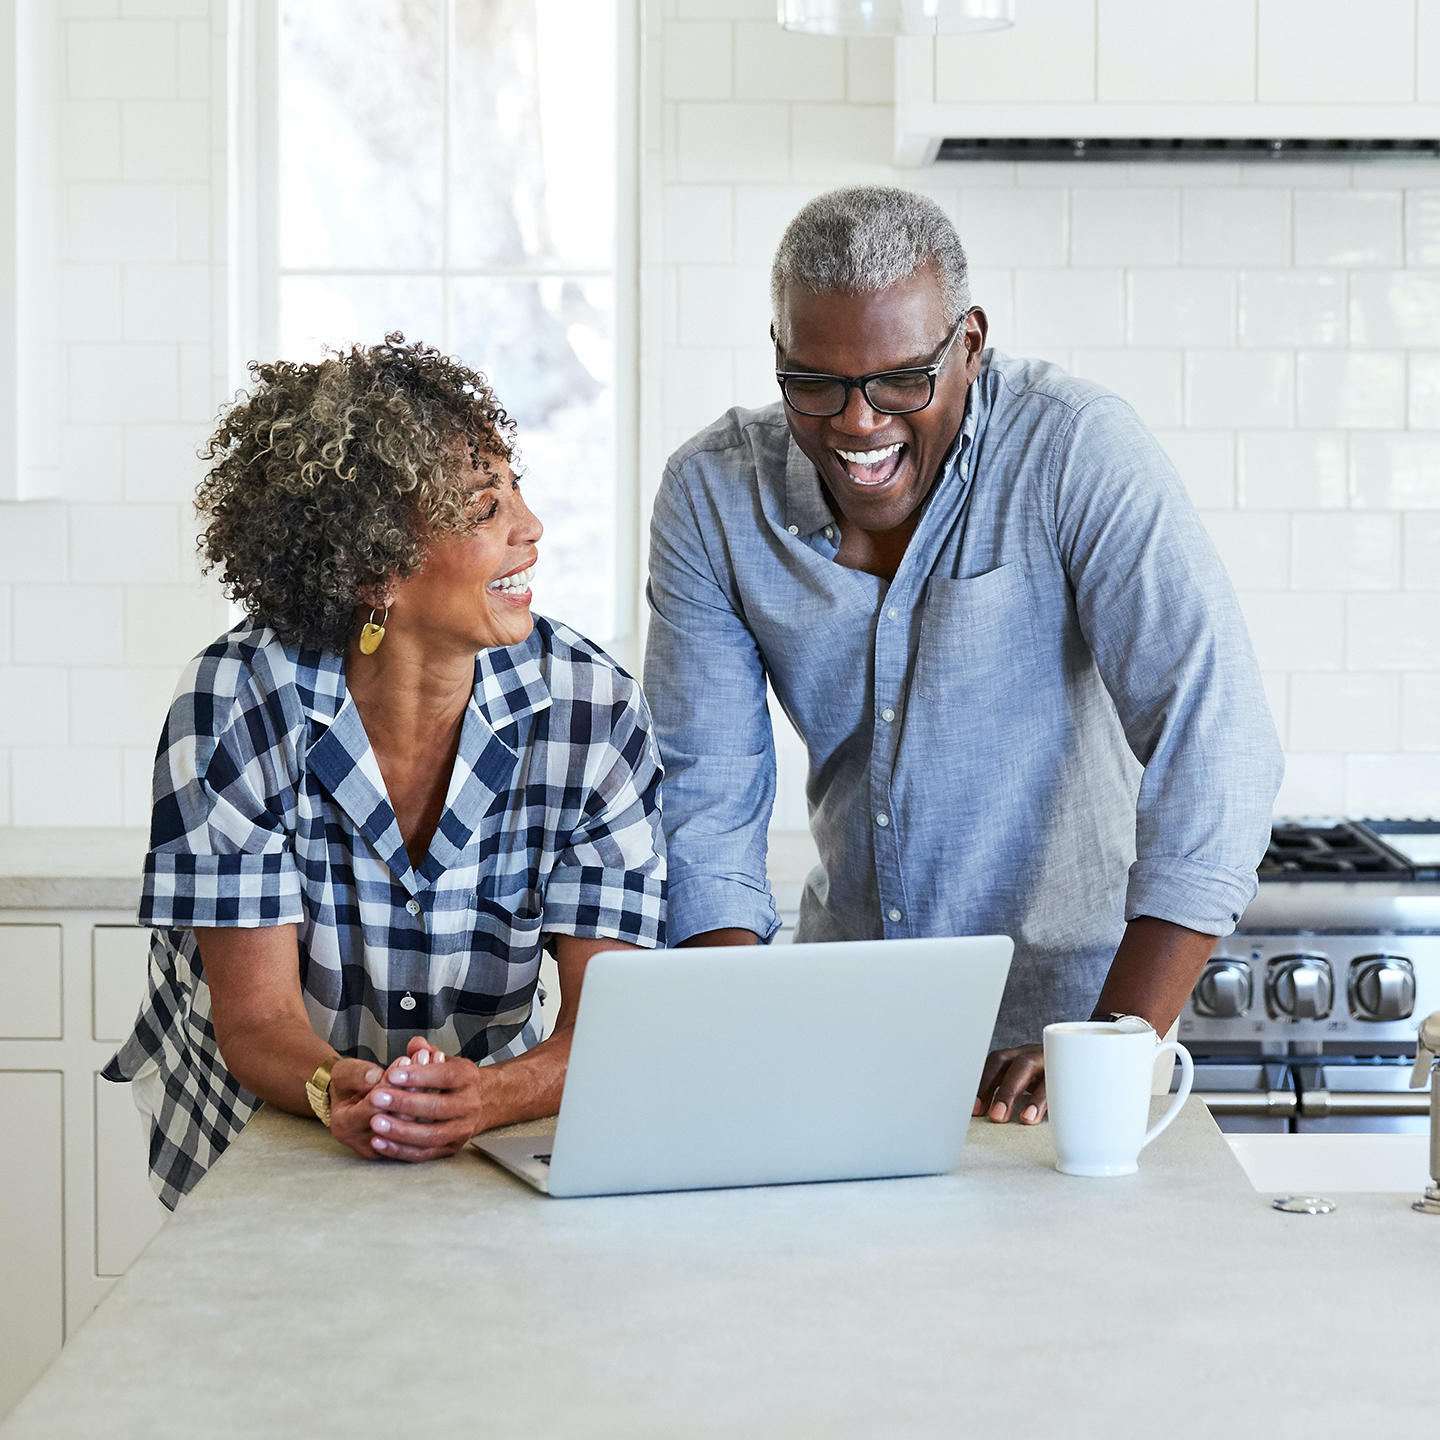 A middle-aged African-American woman and man using a laptop in a modern kitchen.